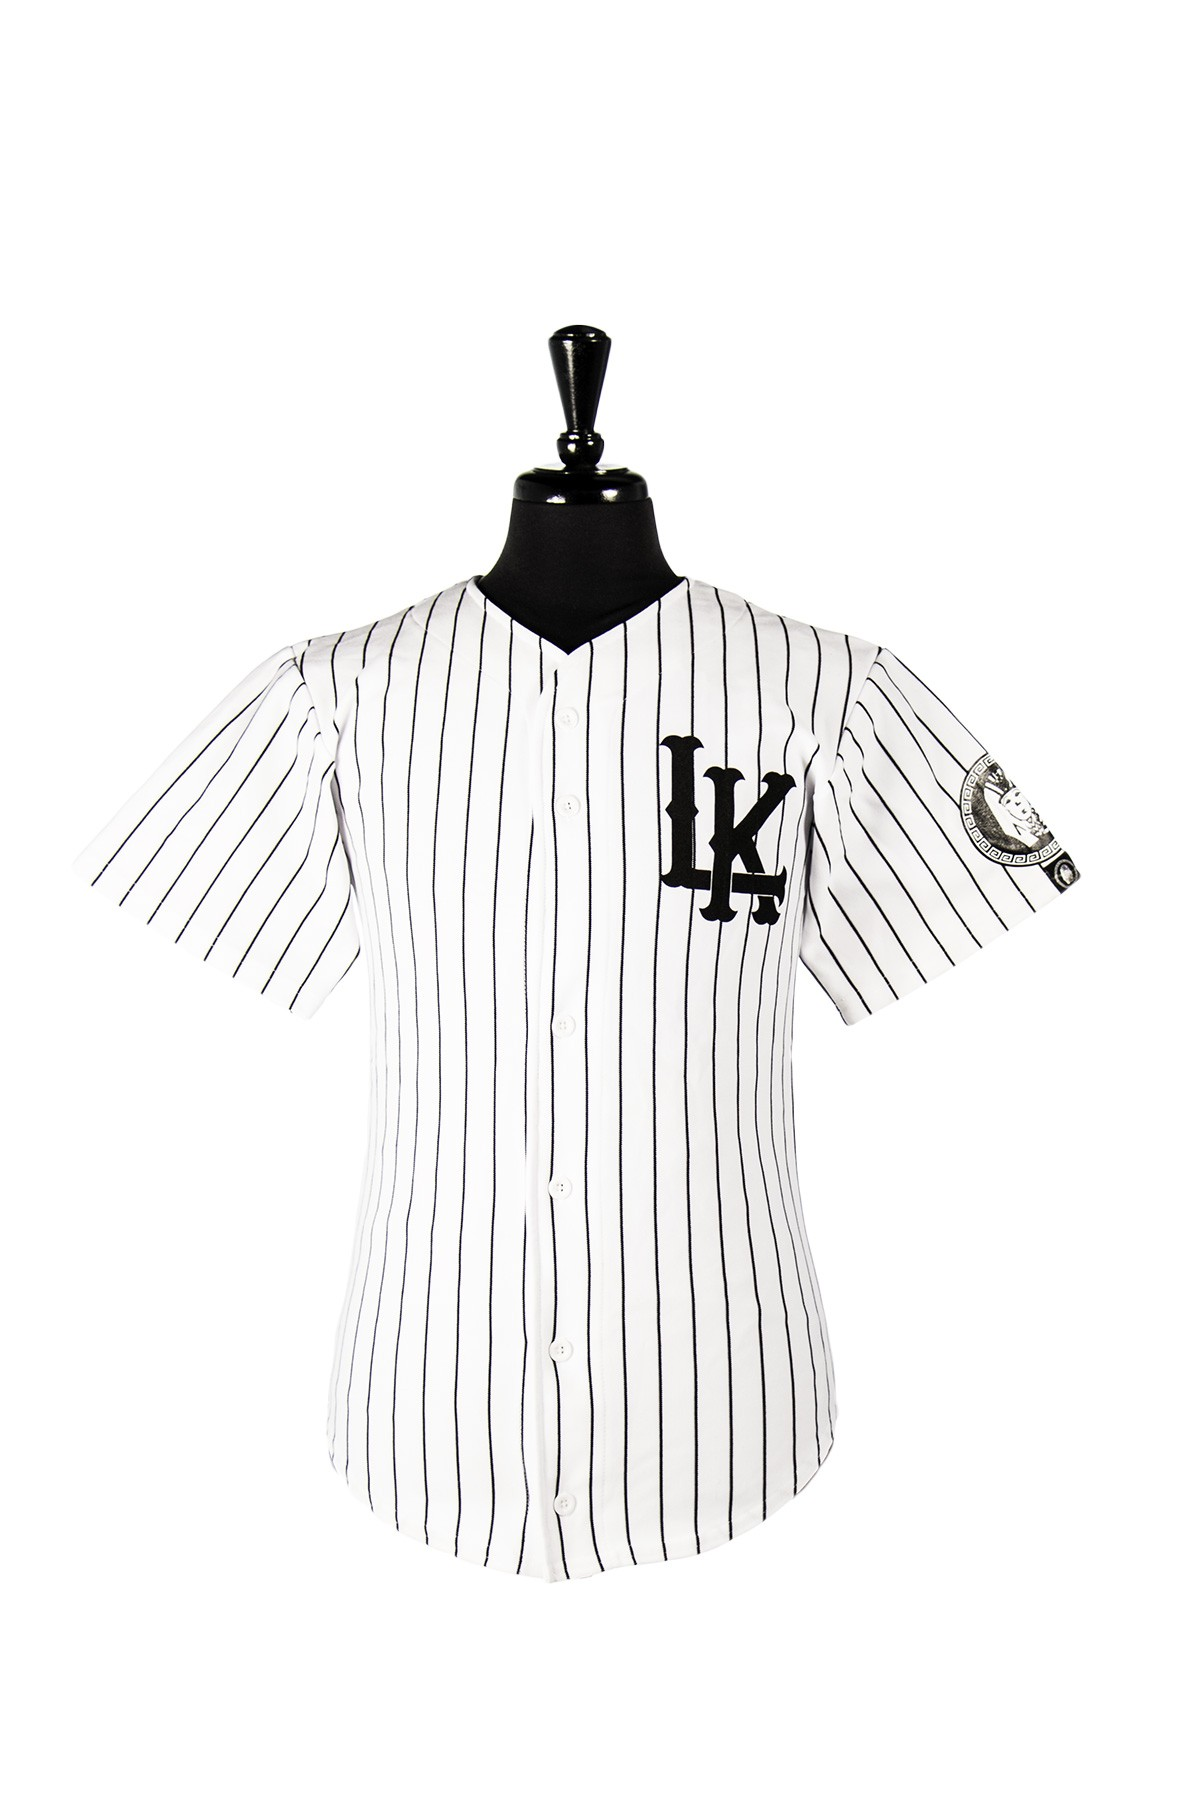 4e70d488ec74 Champion Braided Pinstripe White & Blue Baseball Jersey